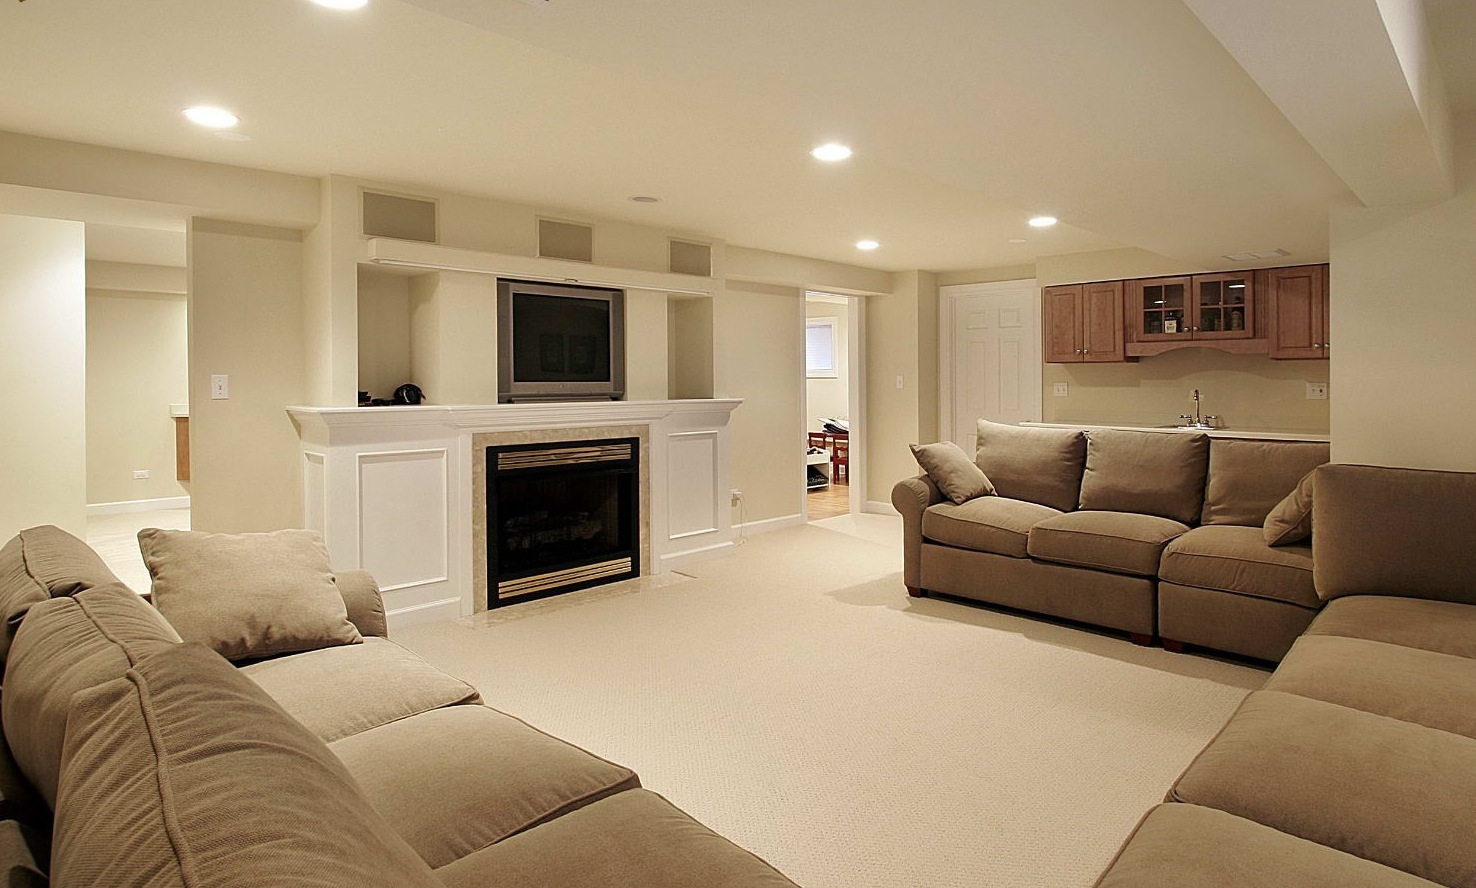 Basement Living Room Designs Simple 30 Cool Ways To Decorate Your Basement  Basements Decorating And Inspiration Design